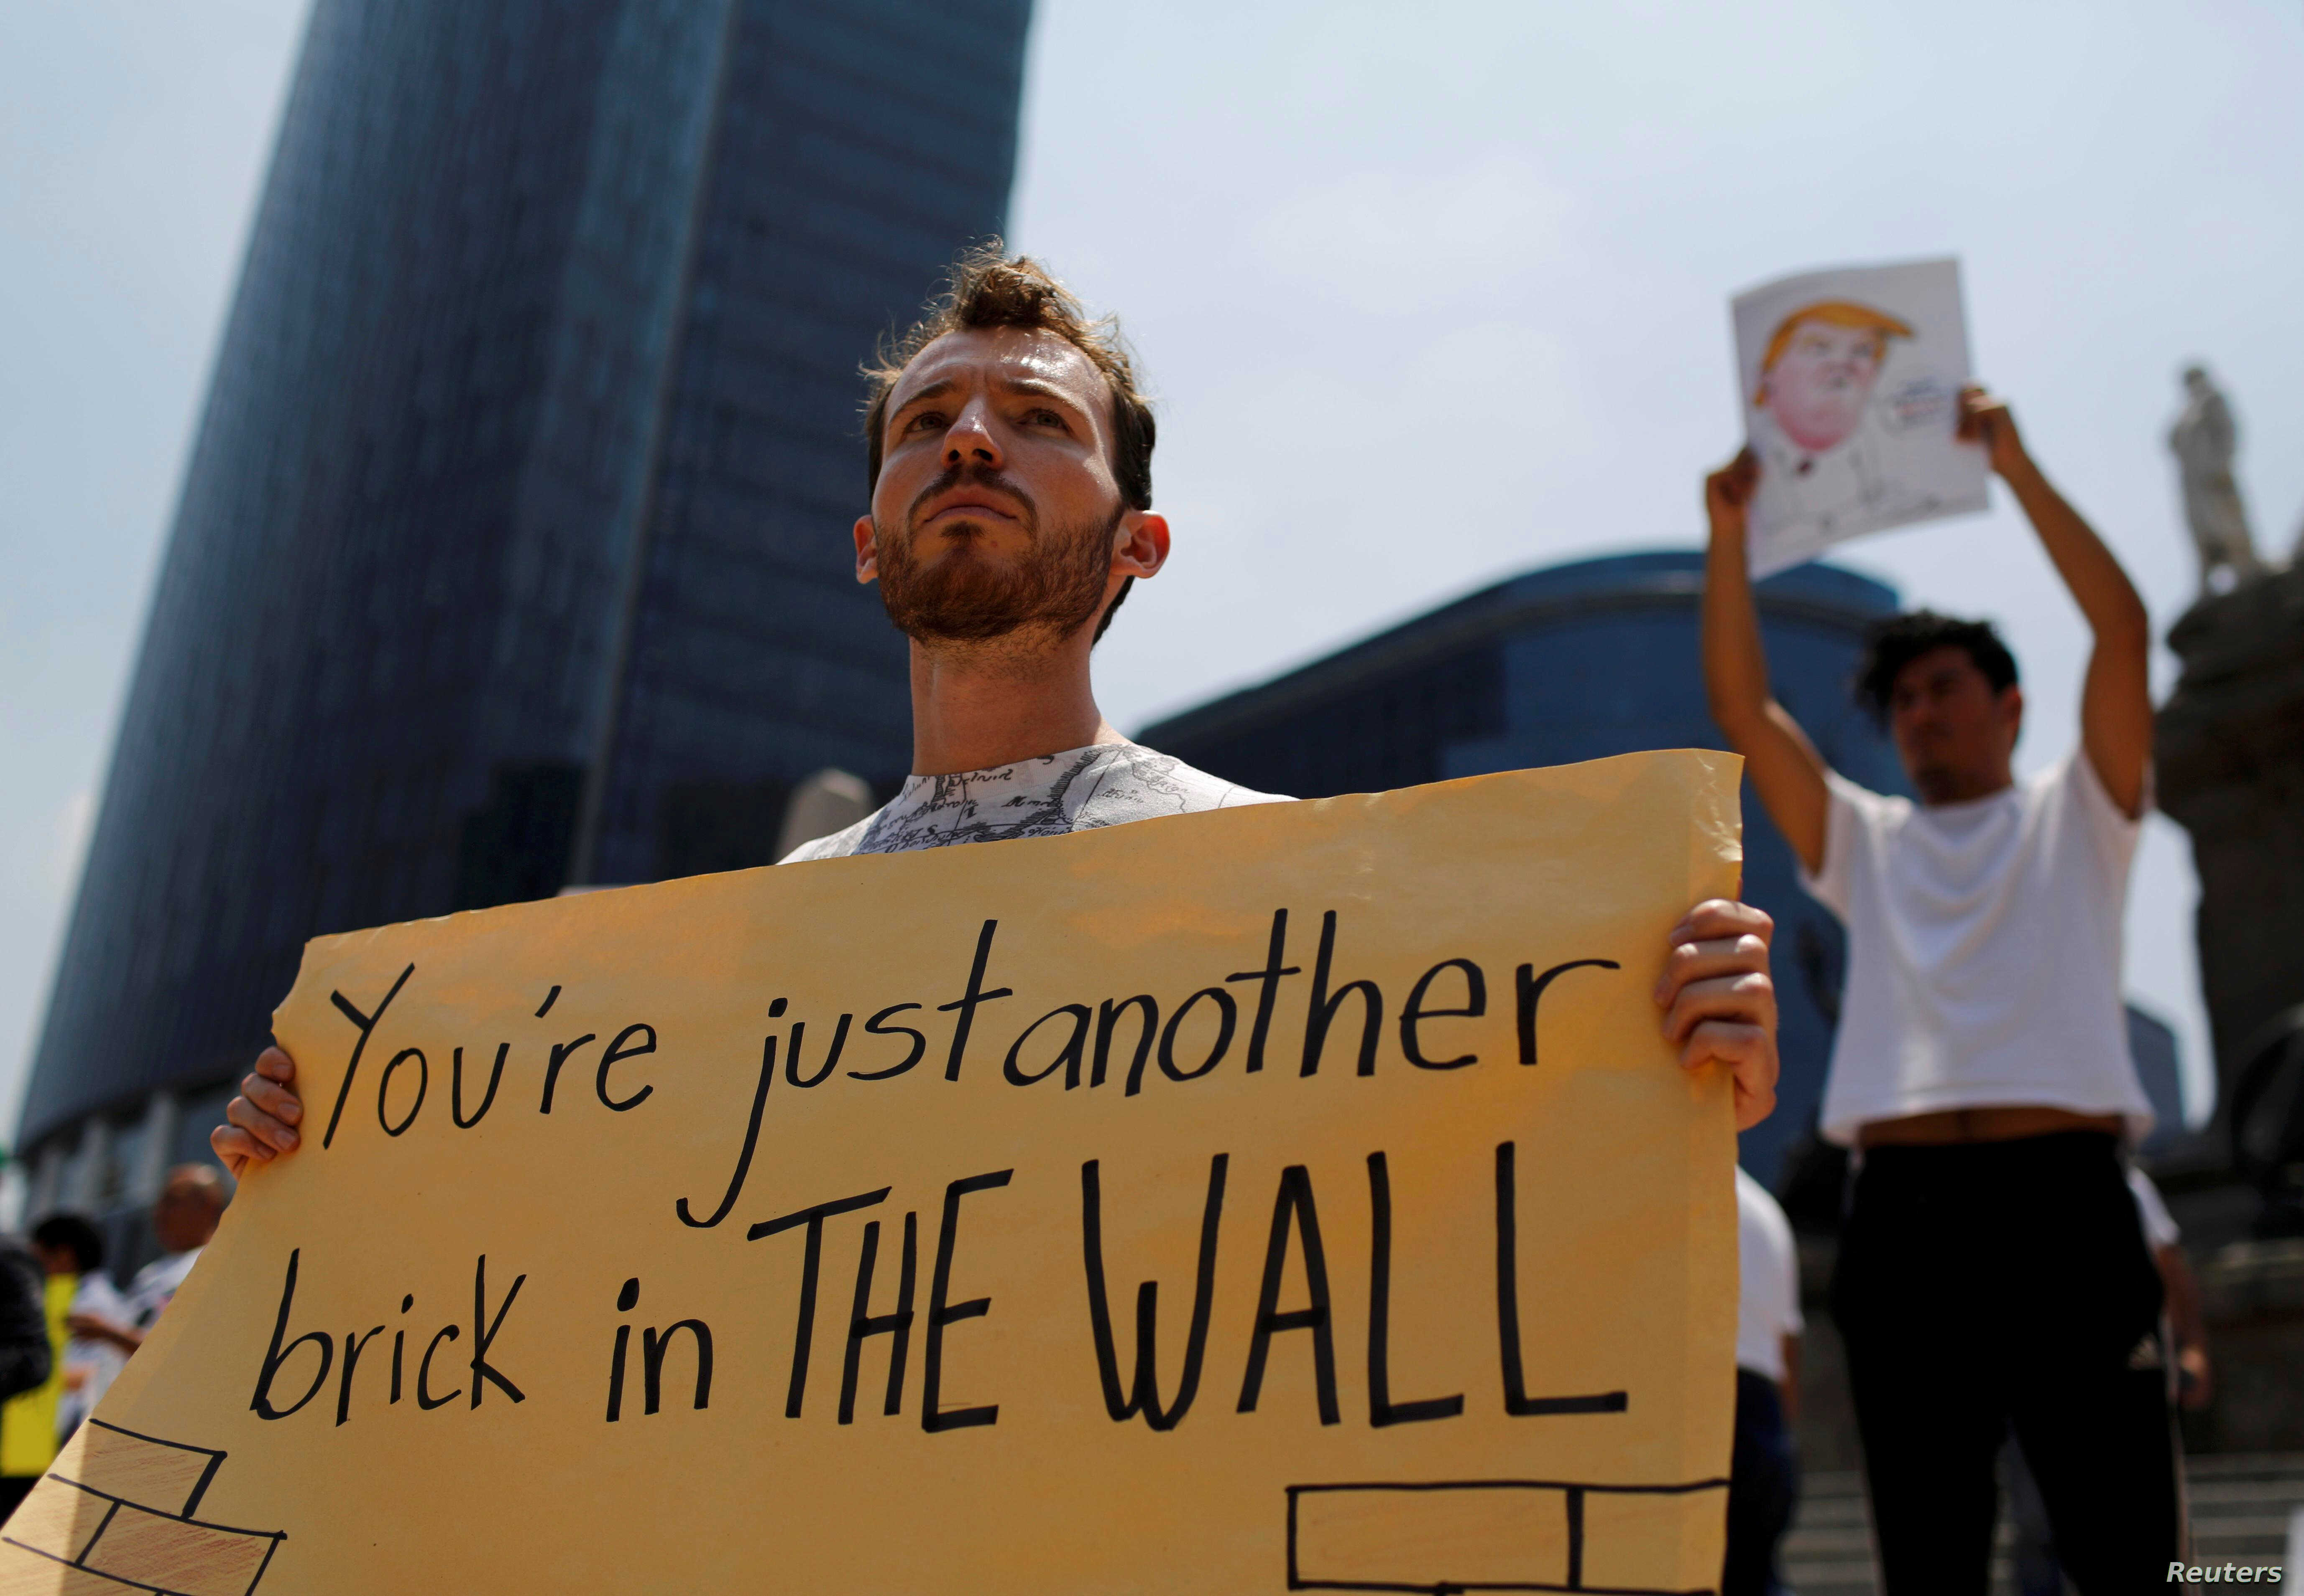 A demonstrator protests against the visit of U.S. Republican presidential candidate Donald Trump at the Angel of Independence monument in Mexico City, Mexico, Aug. 31, 2016.